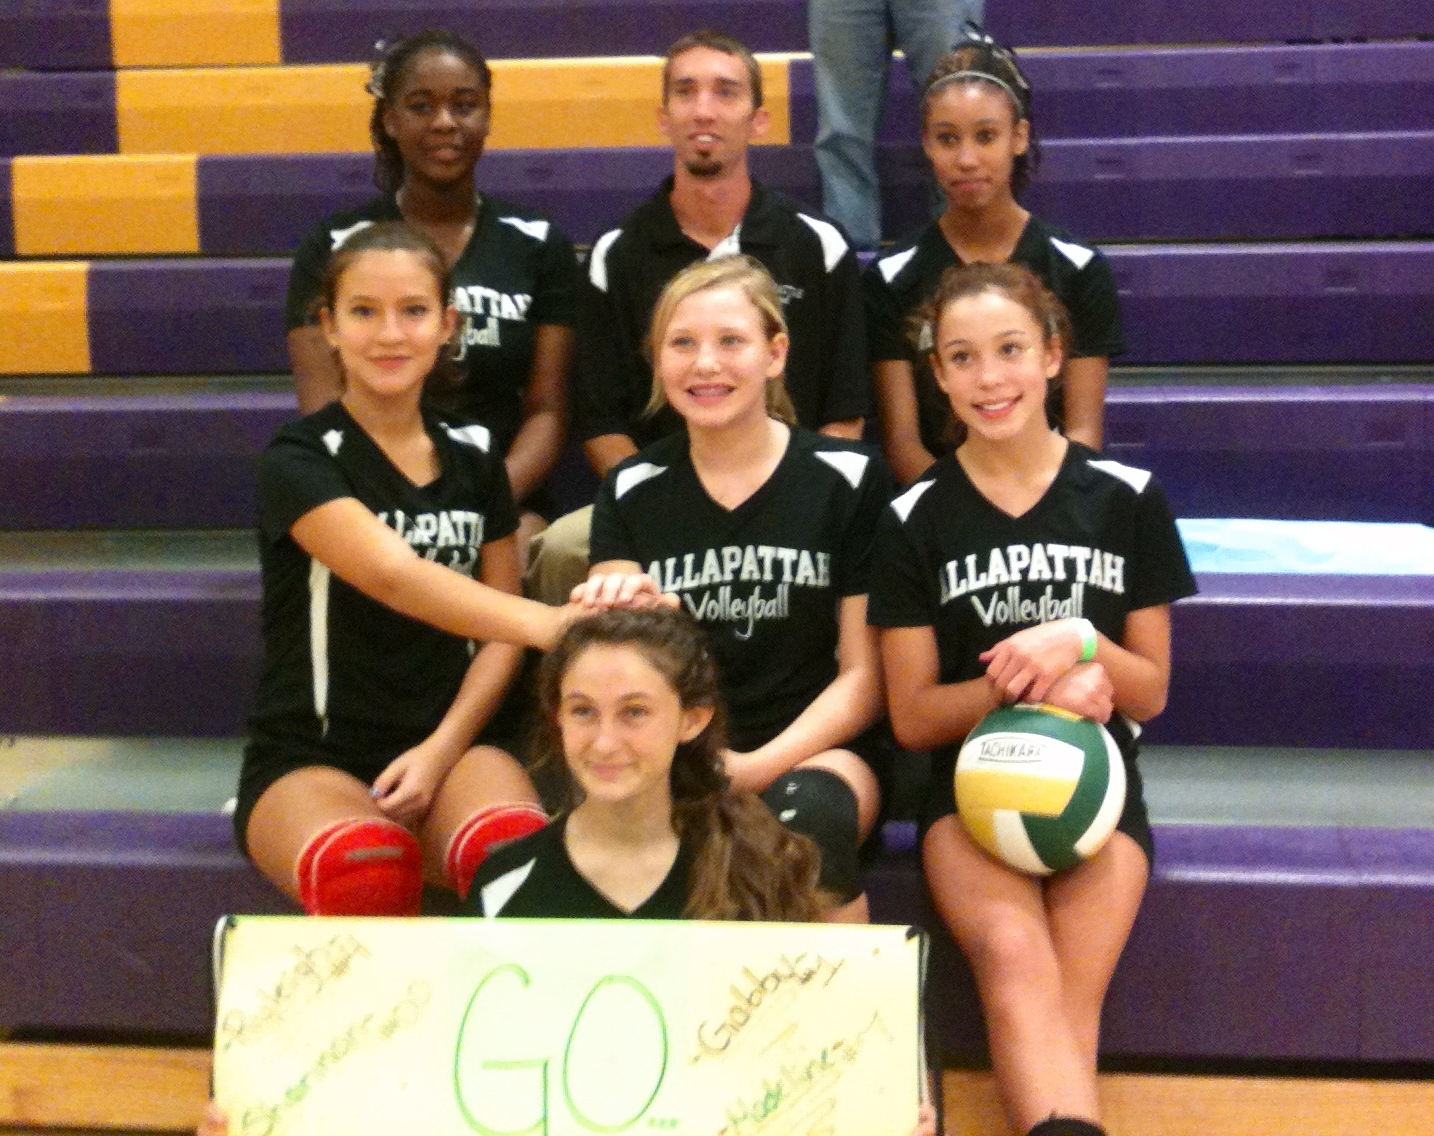 Allapattah Flats team places second in volleyball tournament